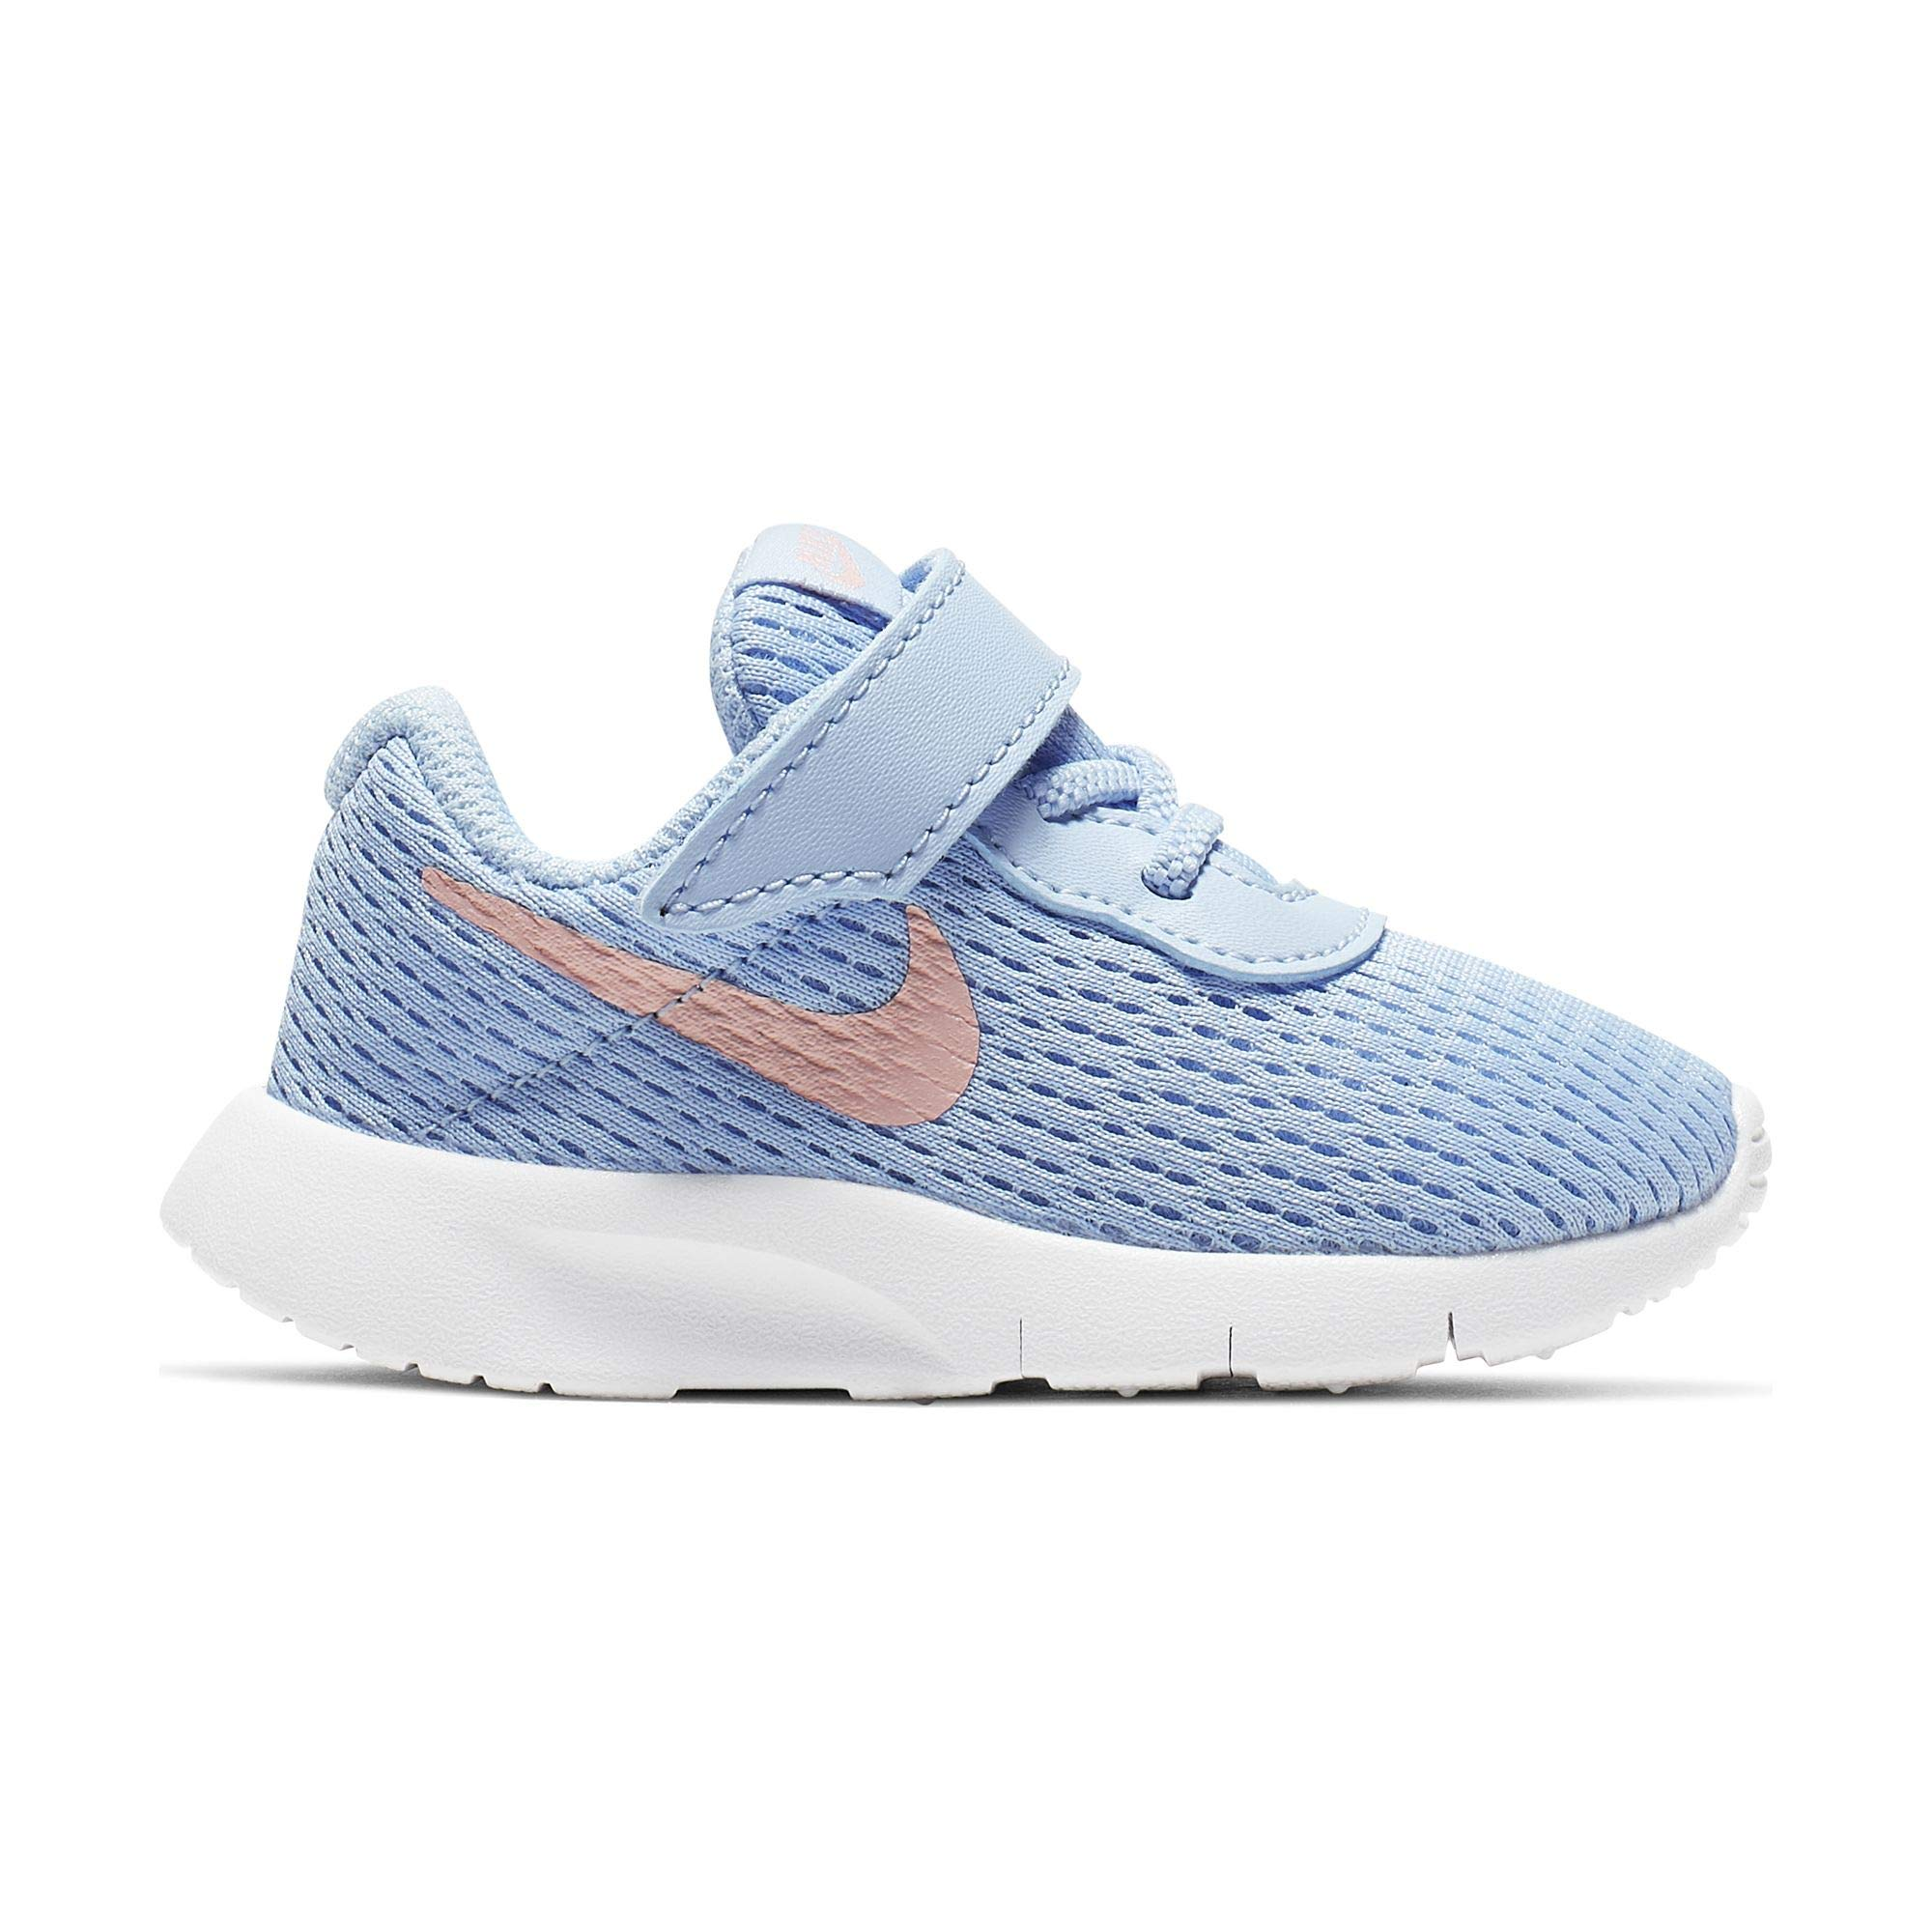 Nike Girl's Tanjun (TD) Toddler Shoe Psychic Blue/Bleached Coral/White Size 5 M US by Nike (Image #1)